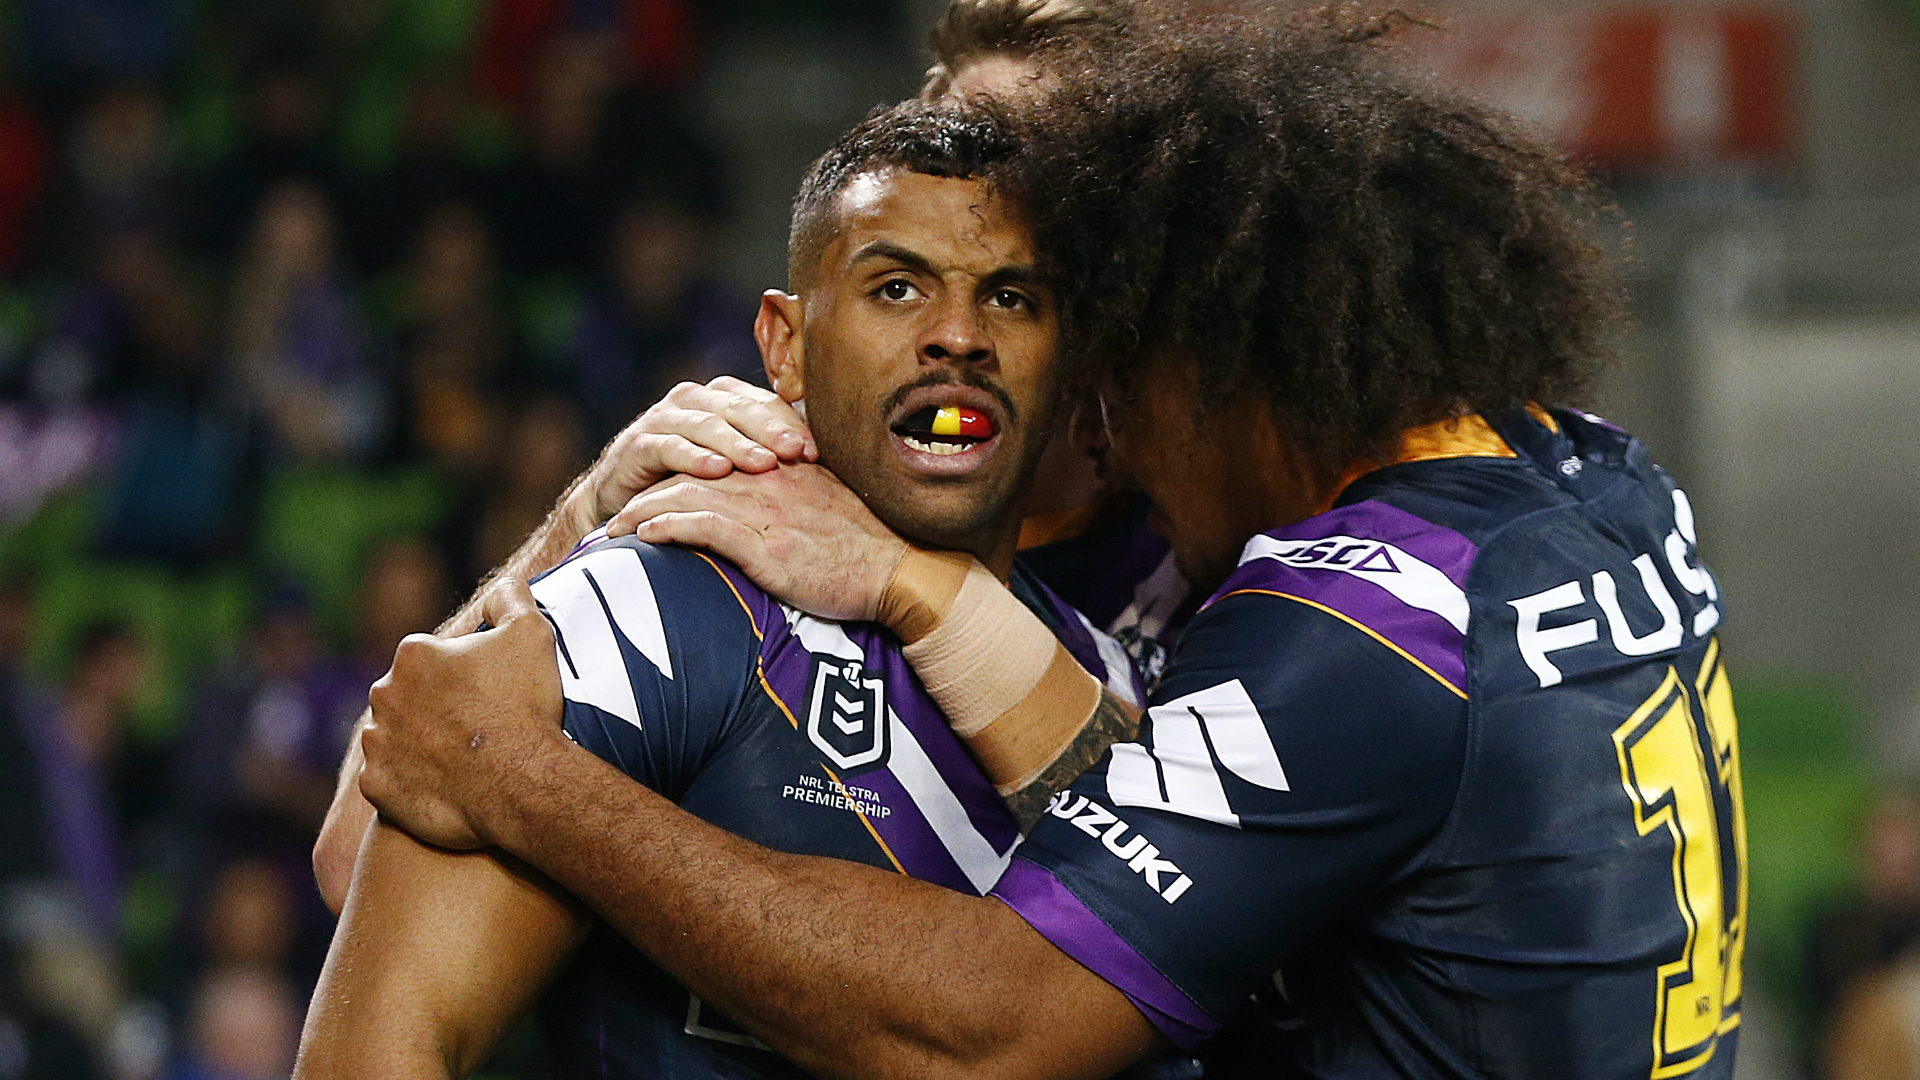 Josh Addo-Carr's double during a first-half blitz helped Melbourne Storm to a big win over Parramatta Eels in a one-sided semi-final.